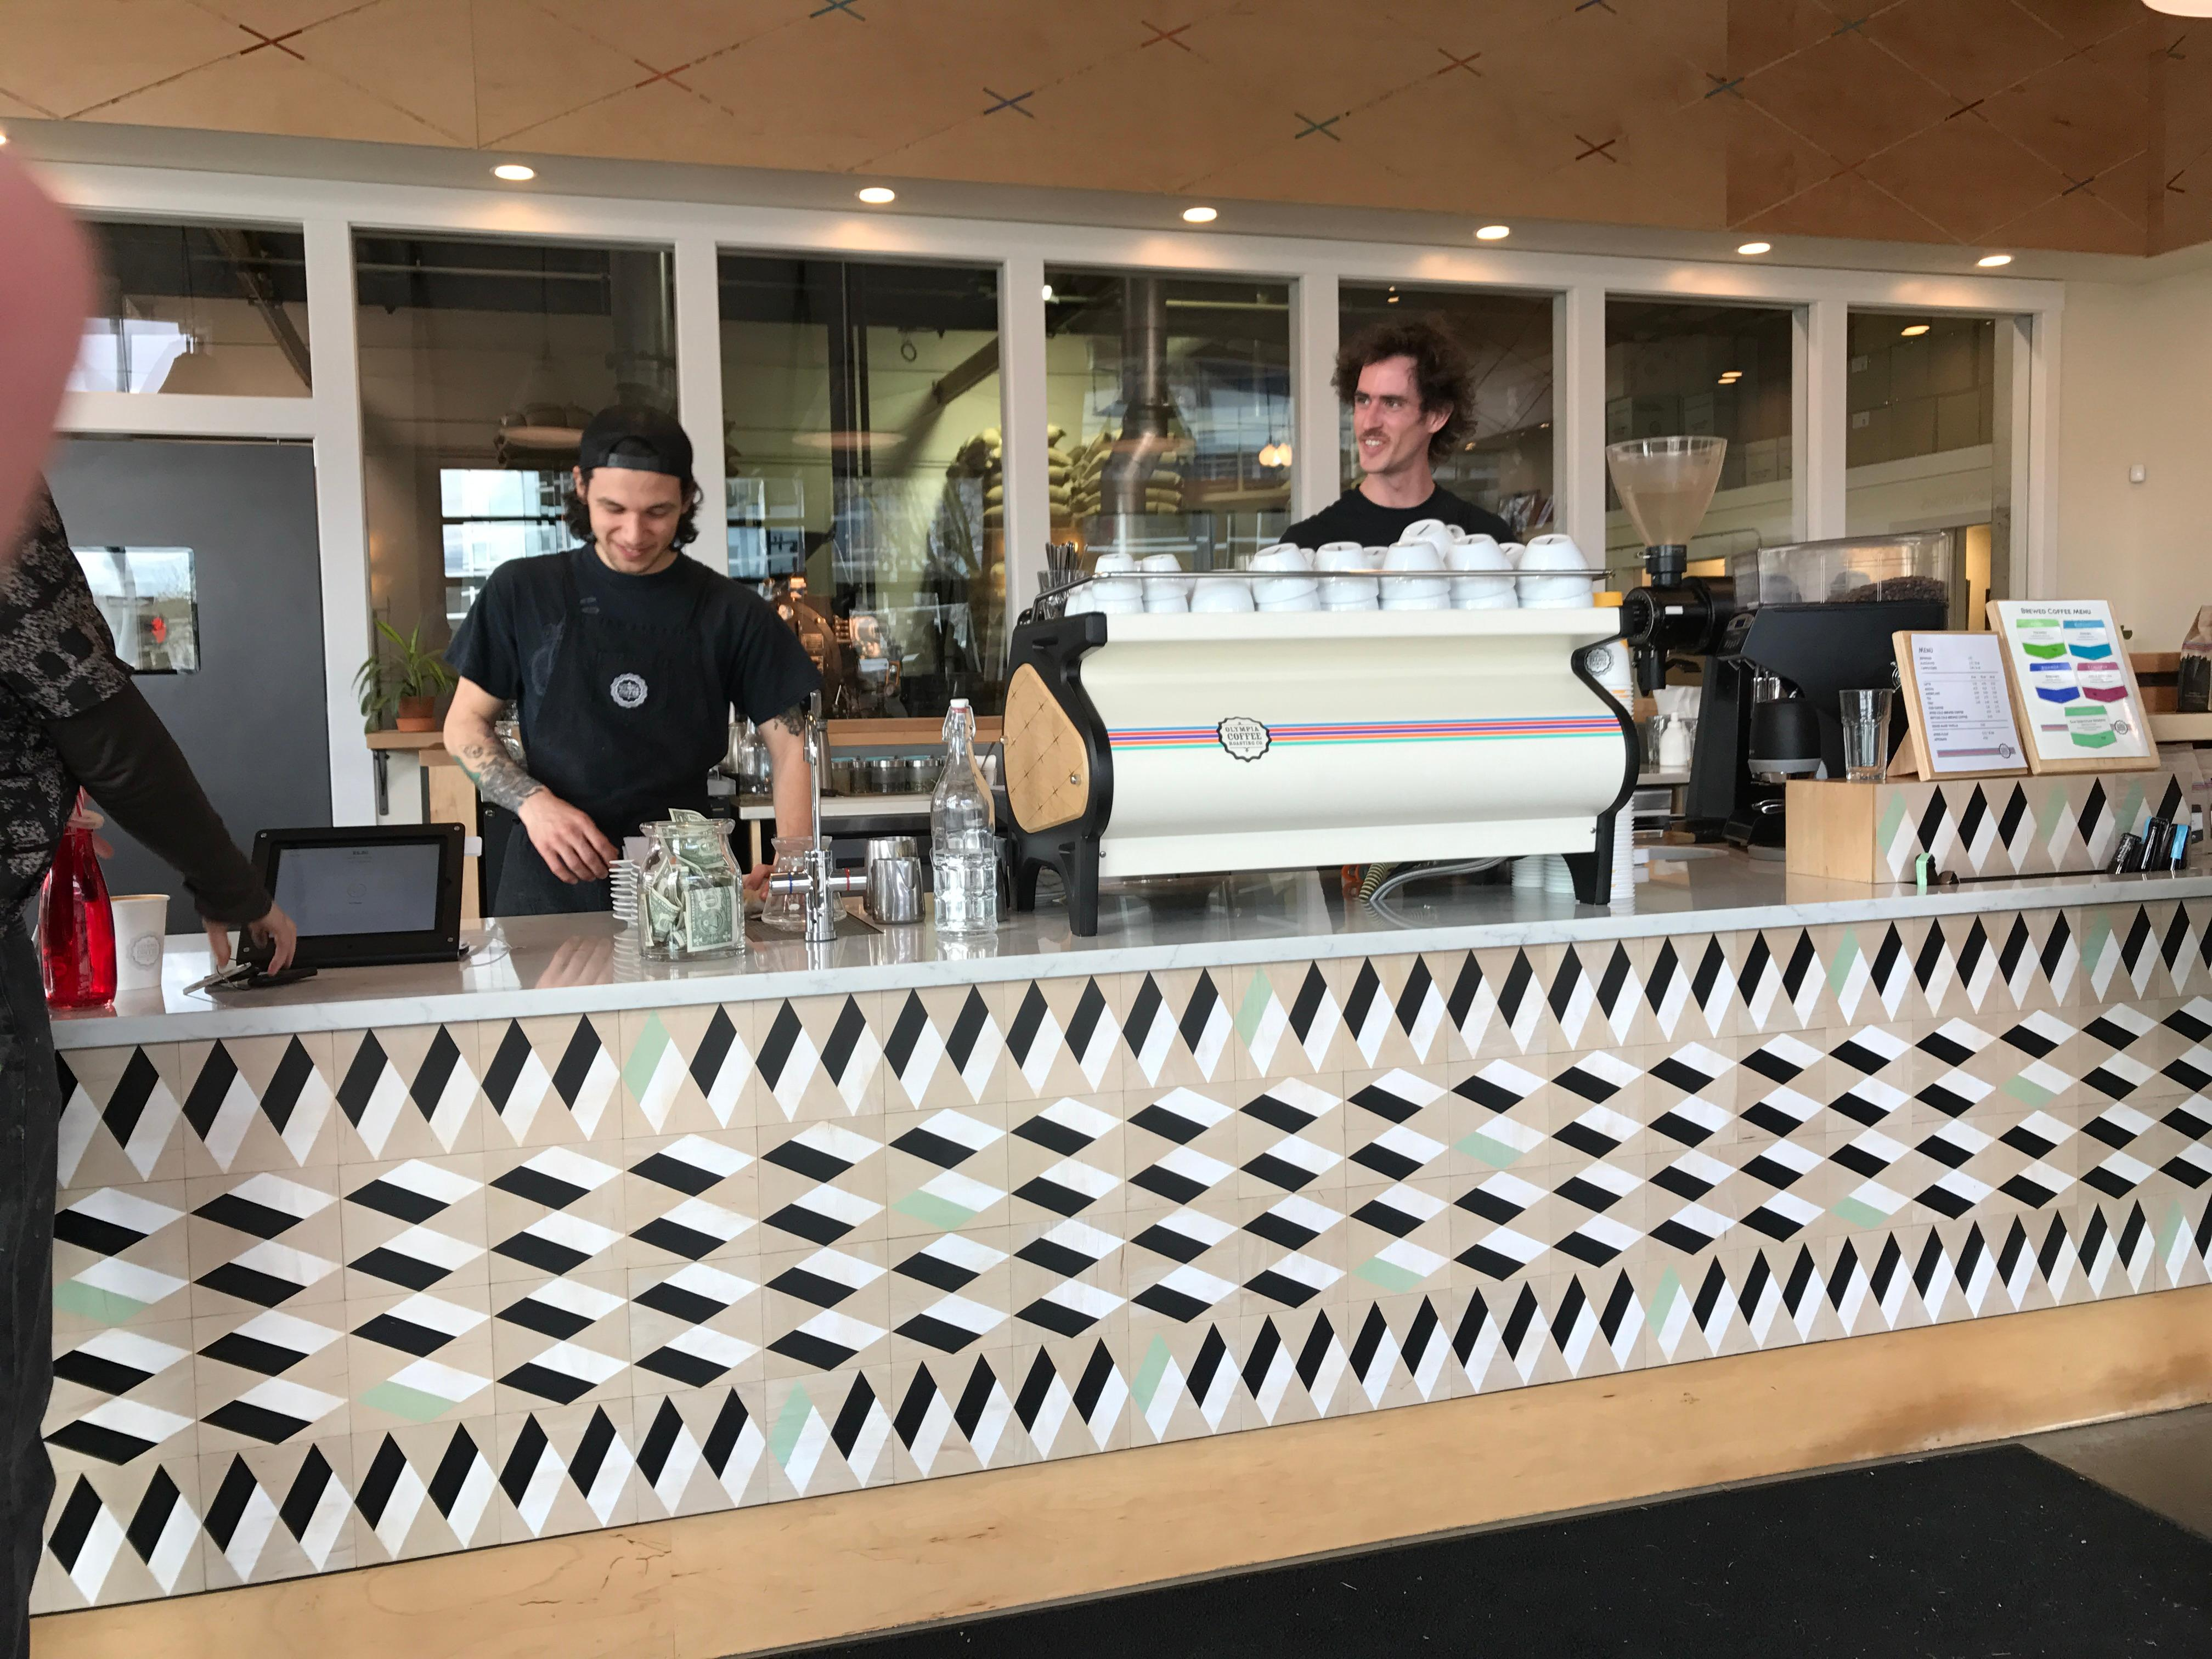 For an afternoon pick-me-up, stop by the Olympia Coffee Roasting Co. for a really good cup of coffee. (Image: Rebecca Mongrain/Seattle Refined)